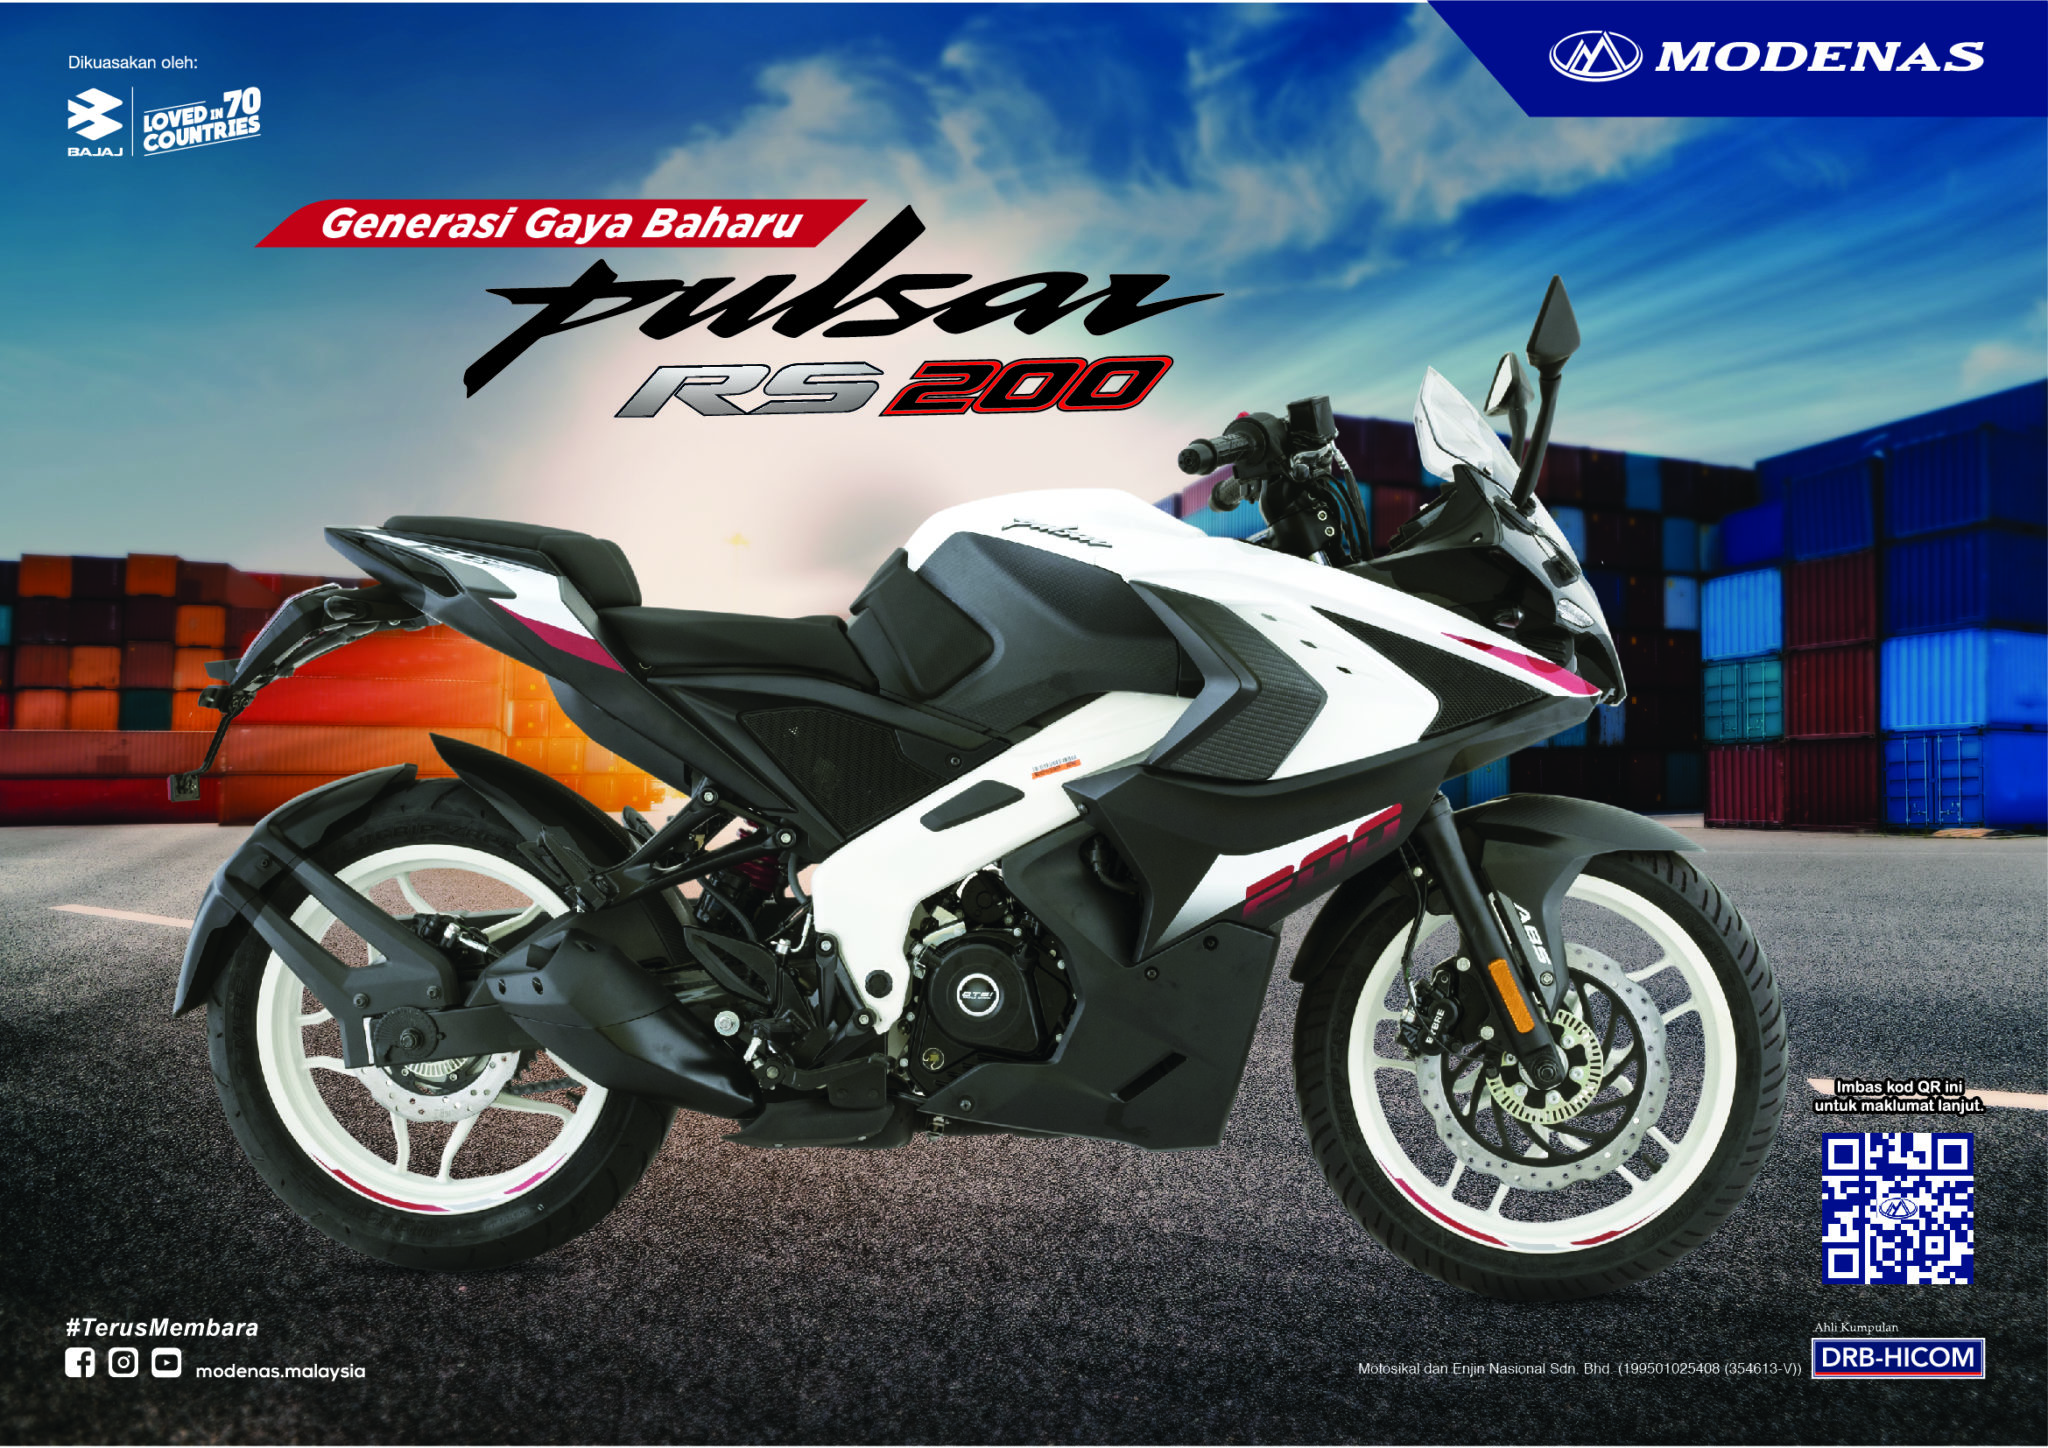 2021 Modenas Pulsar RS200 gets new colours - RM 9,990